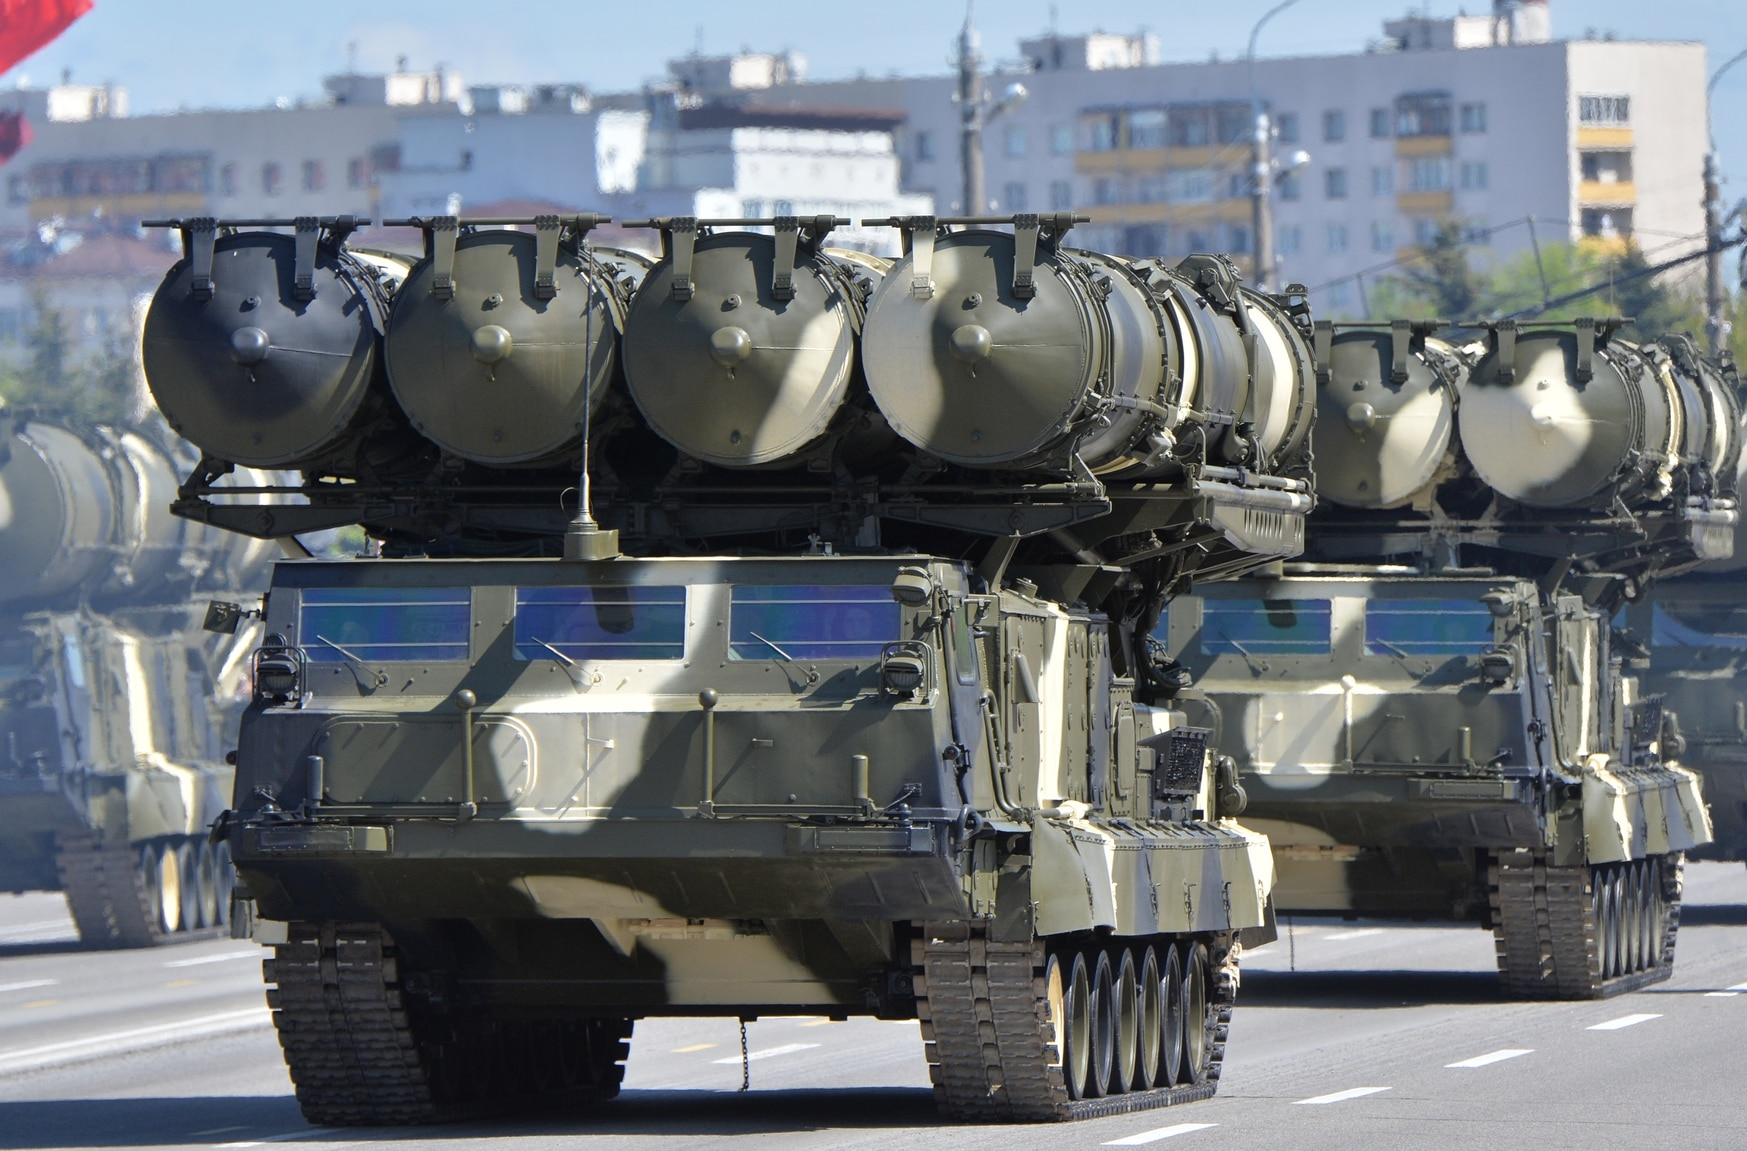 S-300 long-range surface-to-air missile systems are on display during a celebration of the 70th anniversary of victory in World War II in Minsk, Russia, on May 9, 2015. (Host/RIA Novosti via Getty Images)